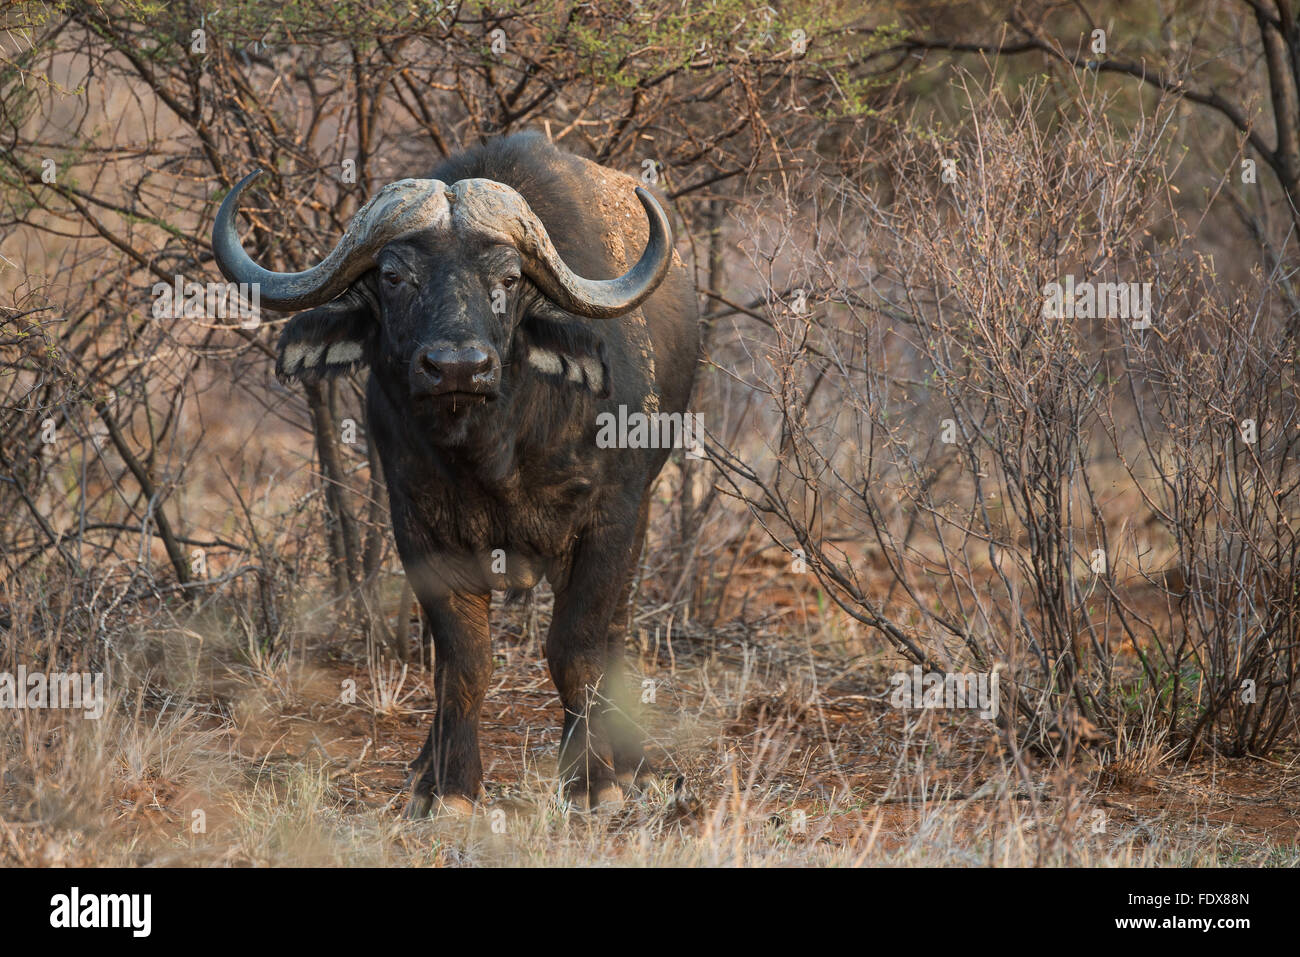 African or Cape buffalo (Syncerus caffer) amongst bushes, Madikwe Game Reserve, North West, South Africa - Stock Image